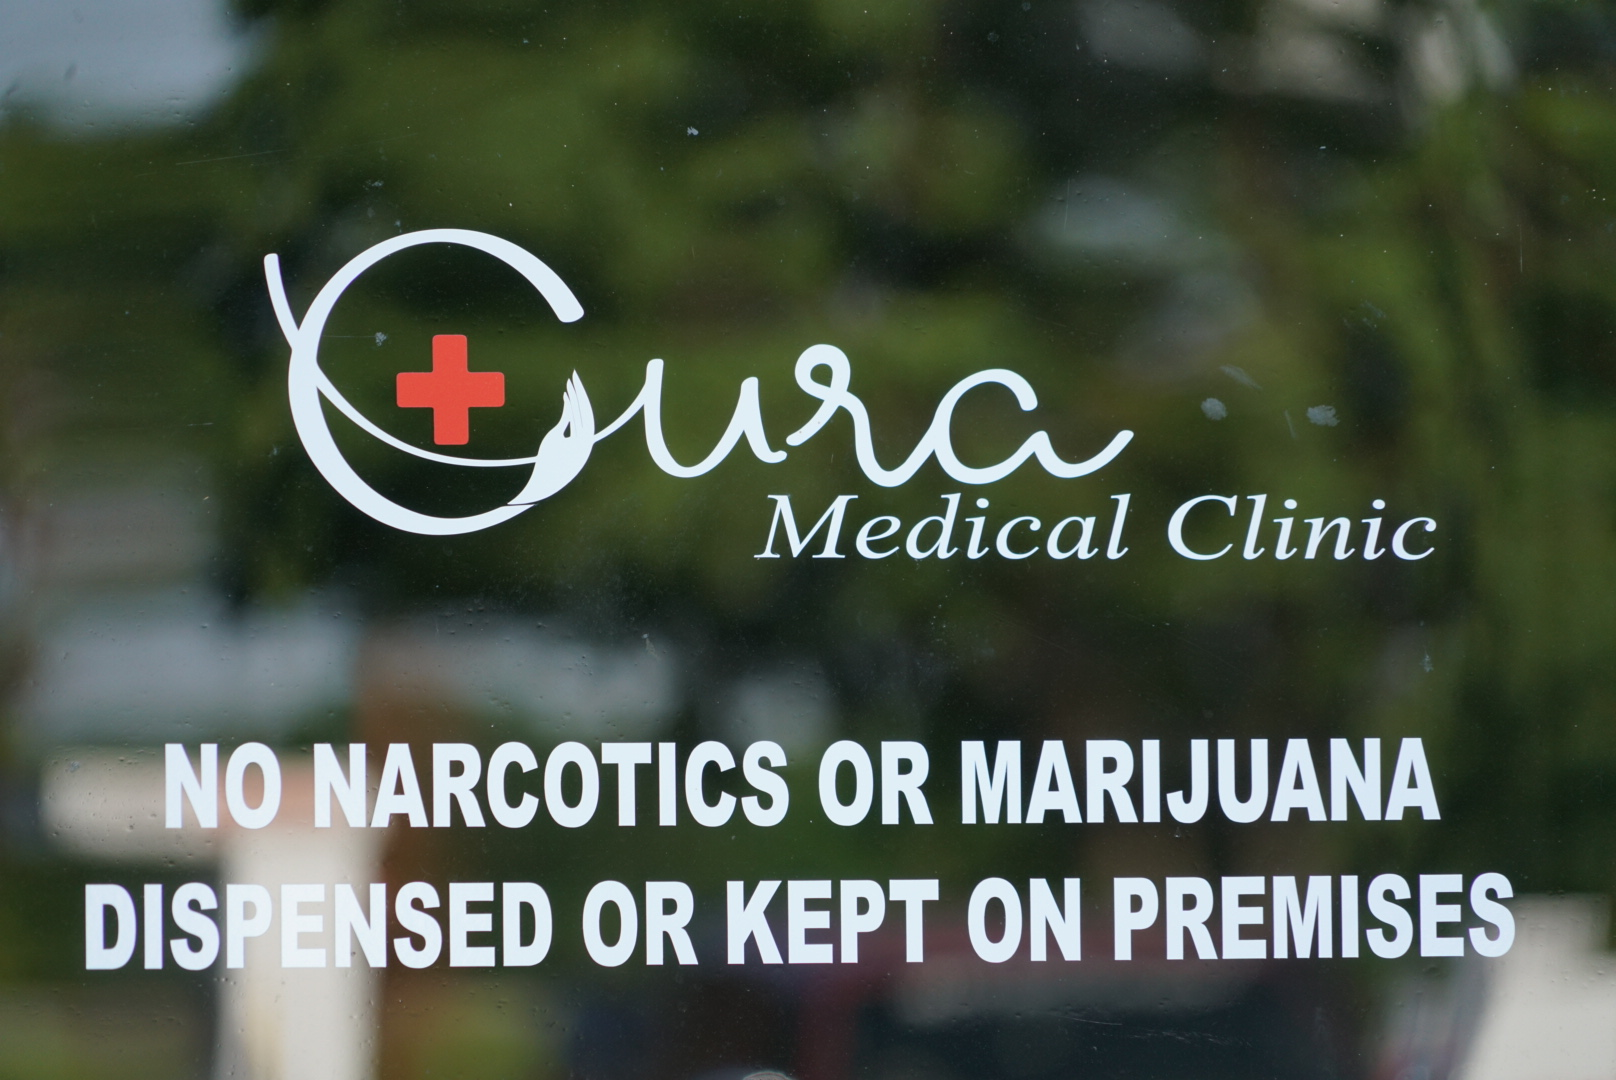 NO NARCOTICS DISPENSED OR KEPT ON PREMISES - CURA for the world's clinics are an opioid free facilities.